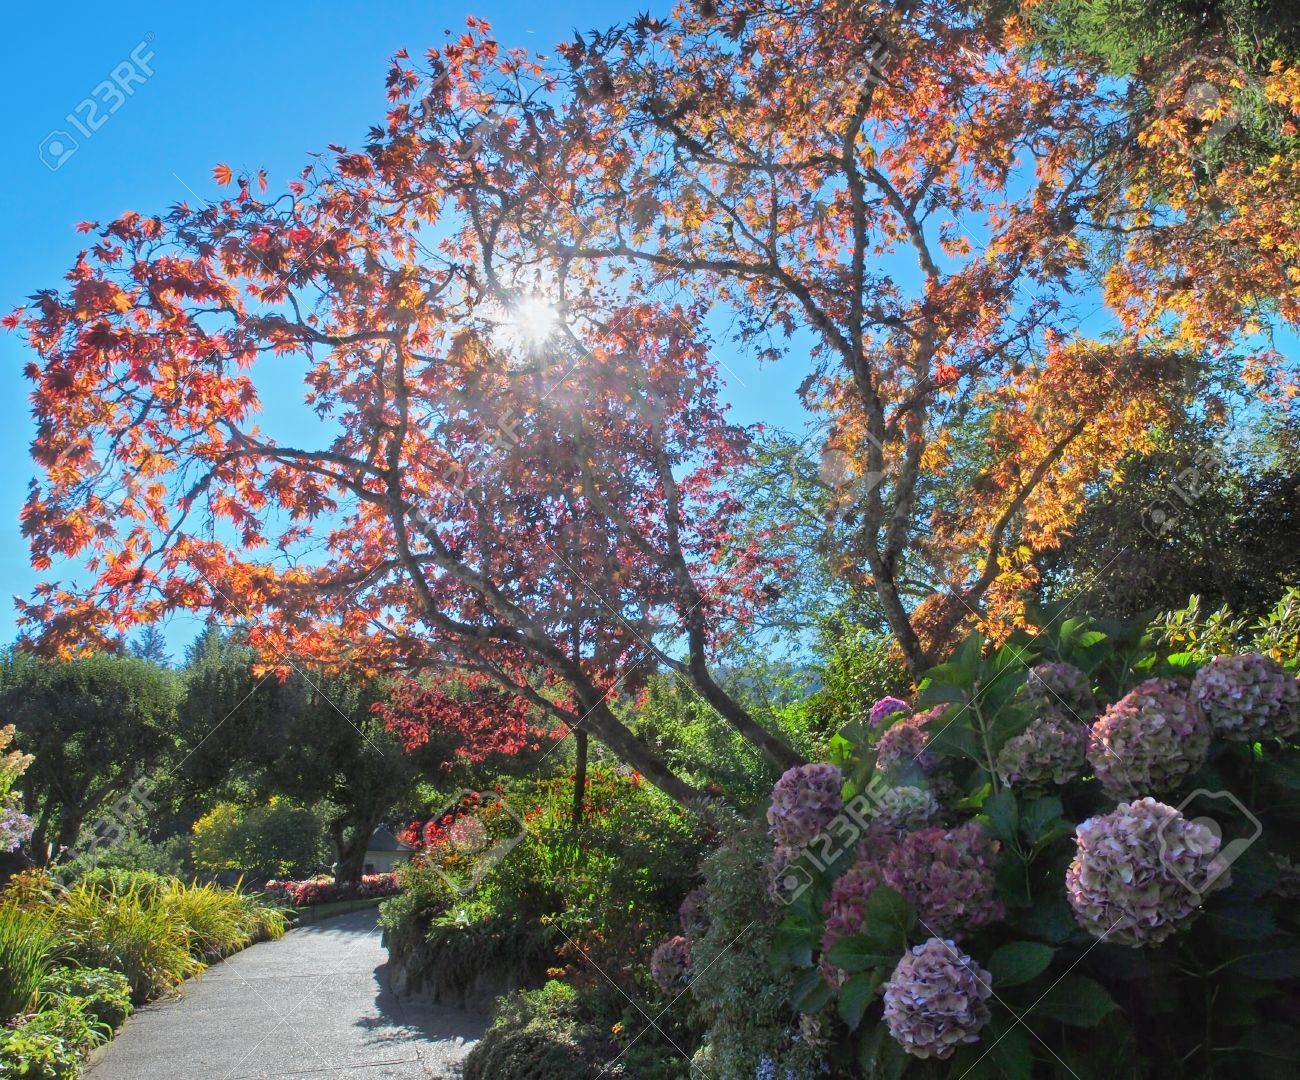 Garden Walkway By The Colorful Fall Trees And Bushes, Backlit ...